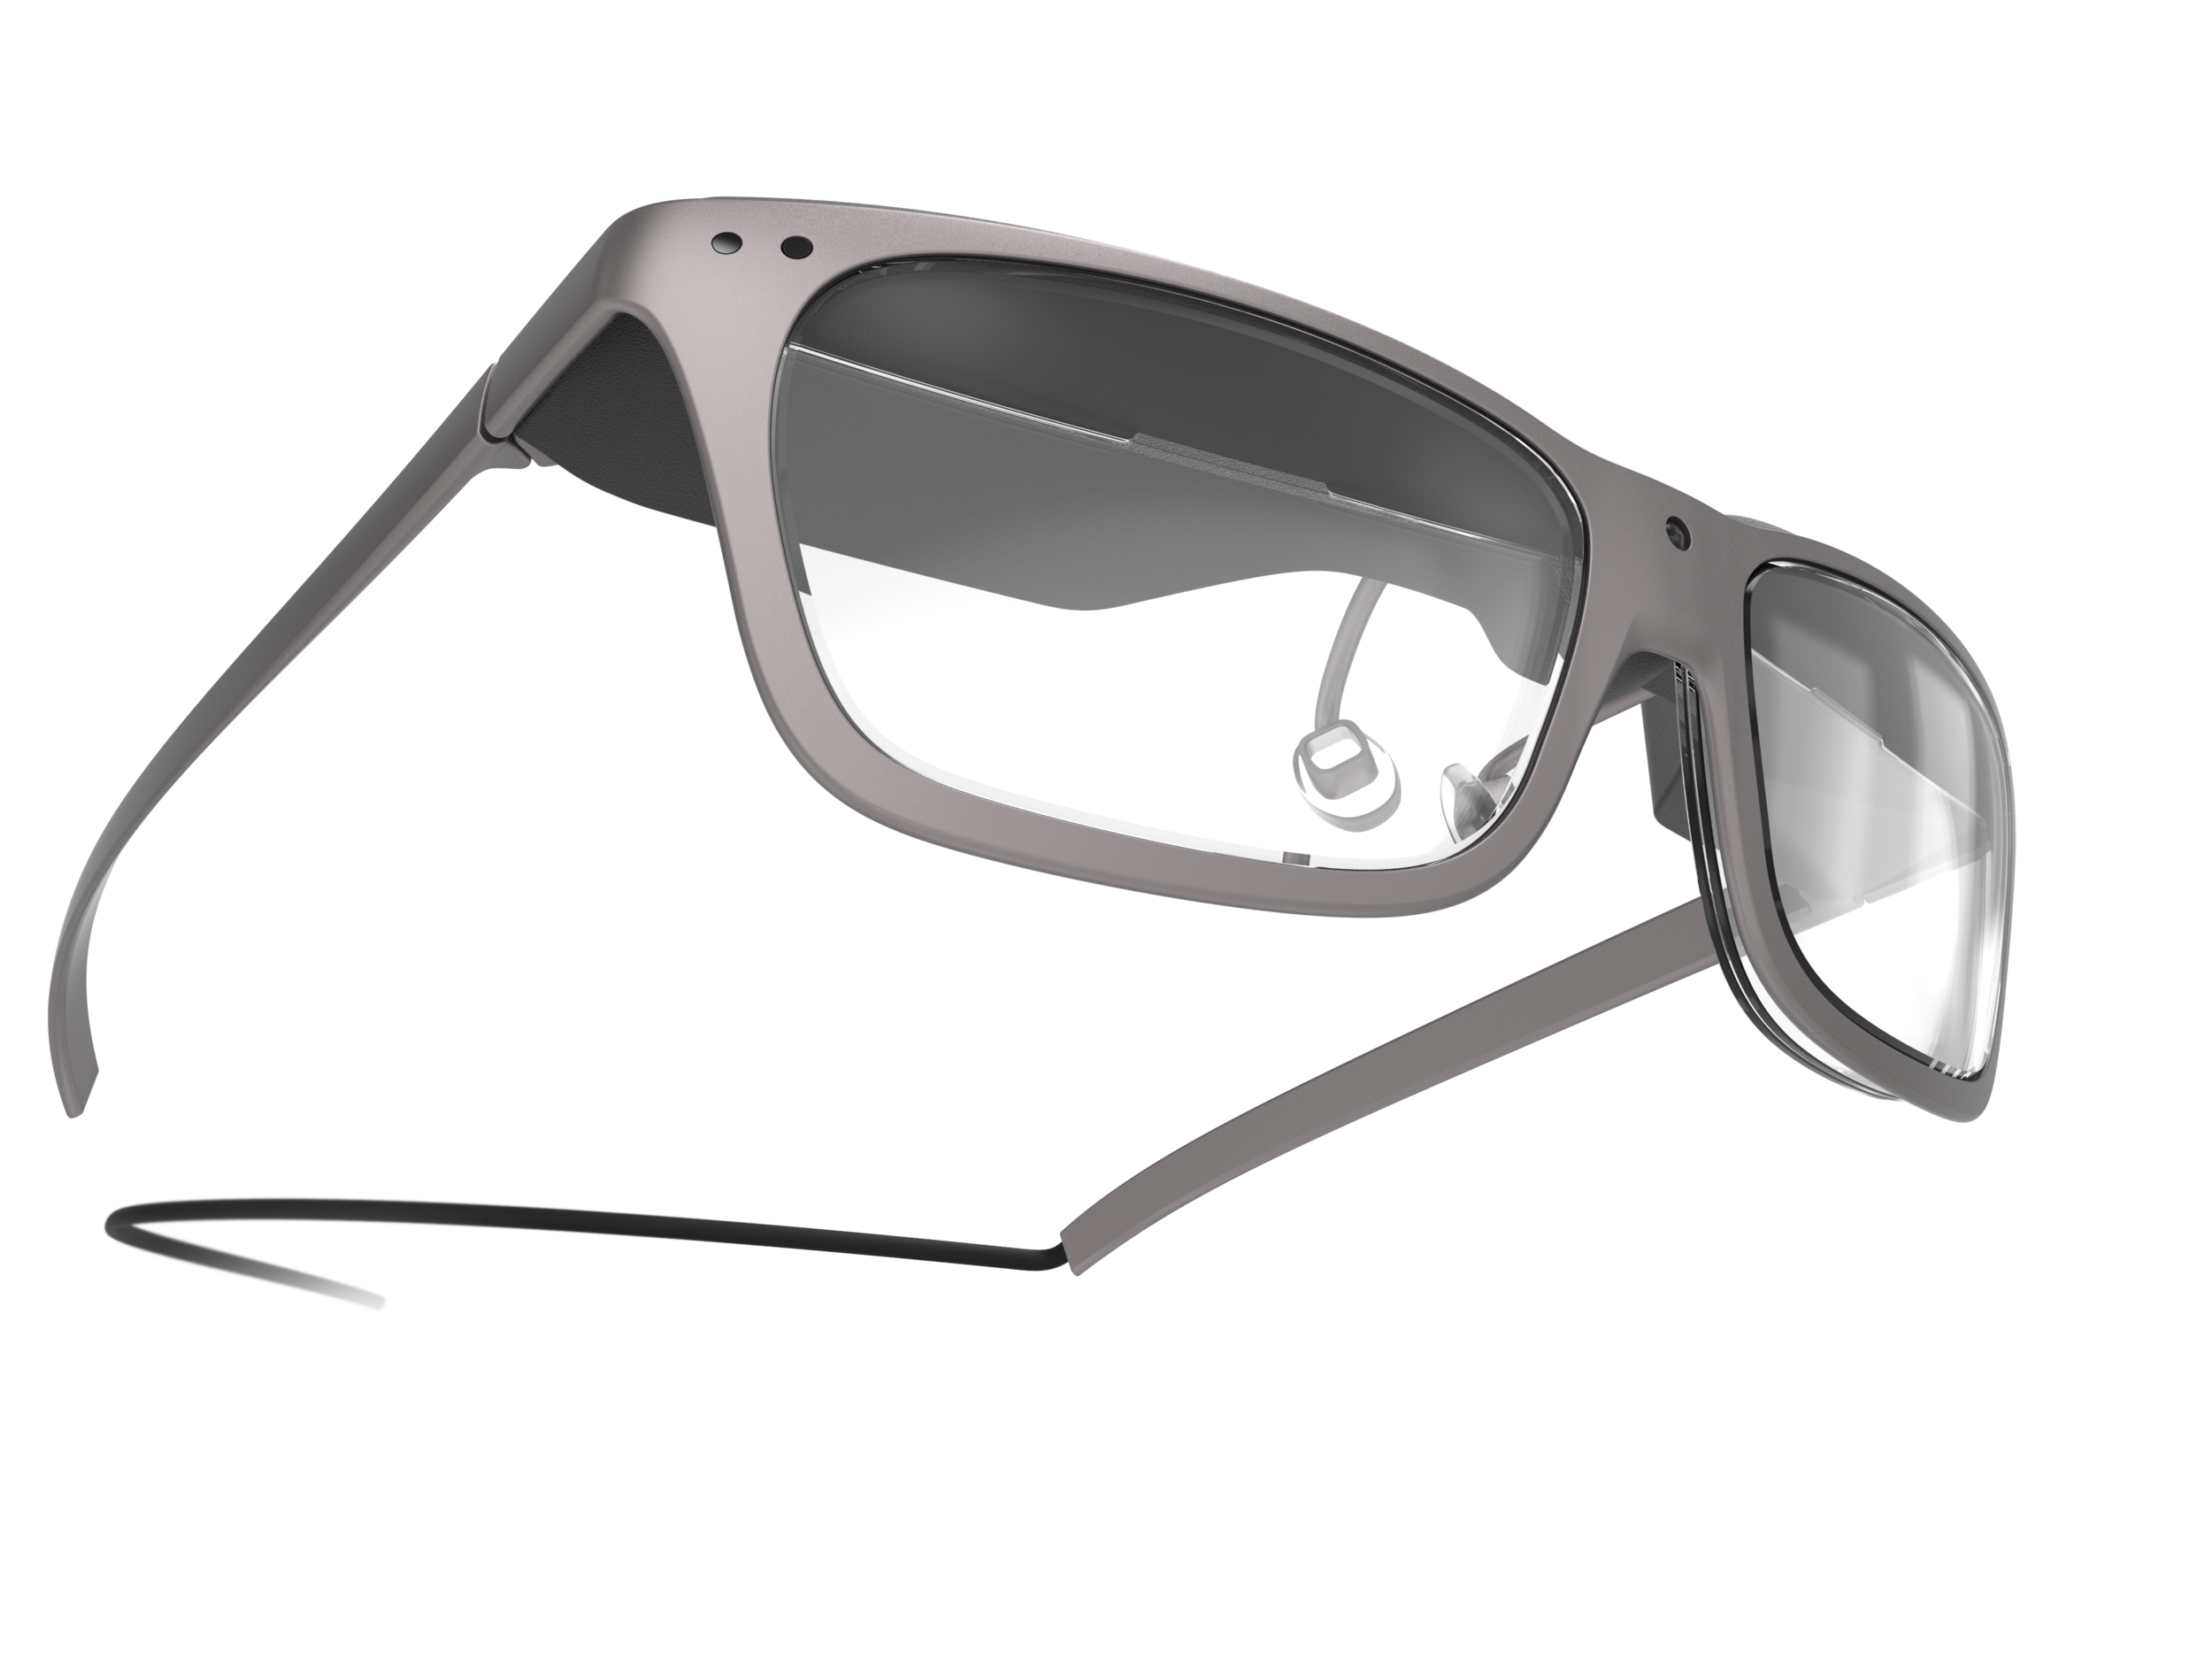 Frog-eye-view perspective of the man's concept design WaveOptics glasses